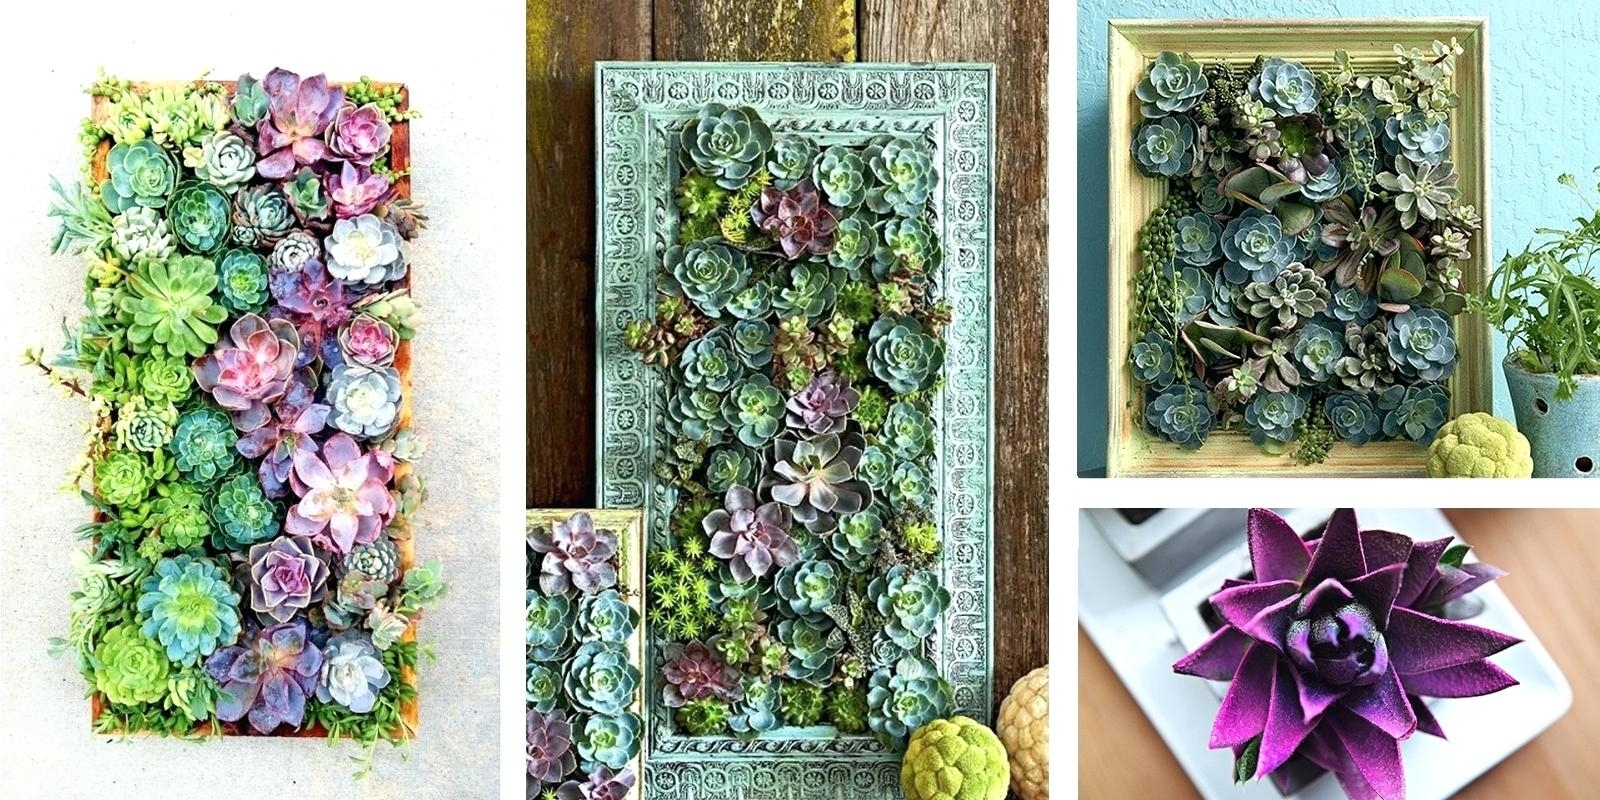 Succulent Wall Hanging Art Kit Decor Diy – Restorethelakes For Latest Succulent Wall Art (View 14 of 20)